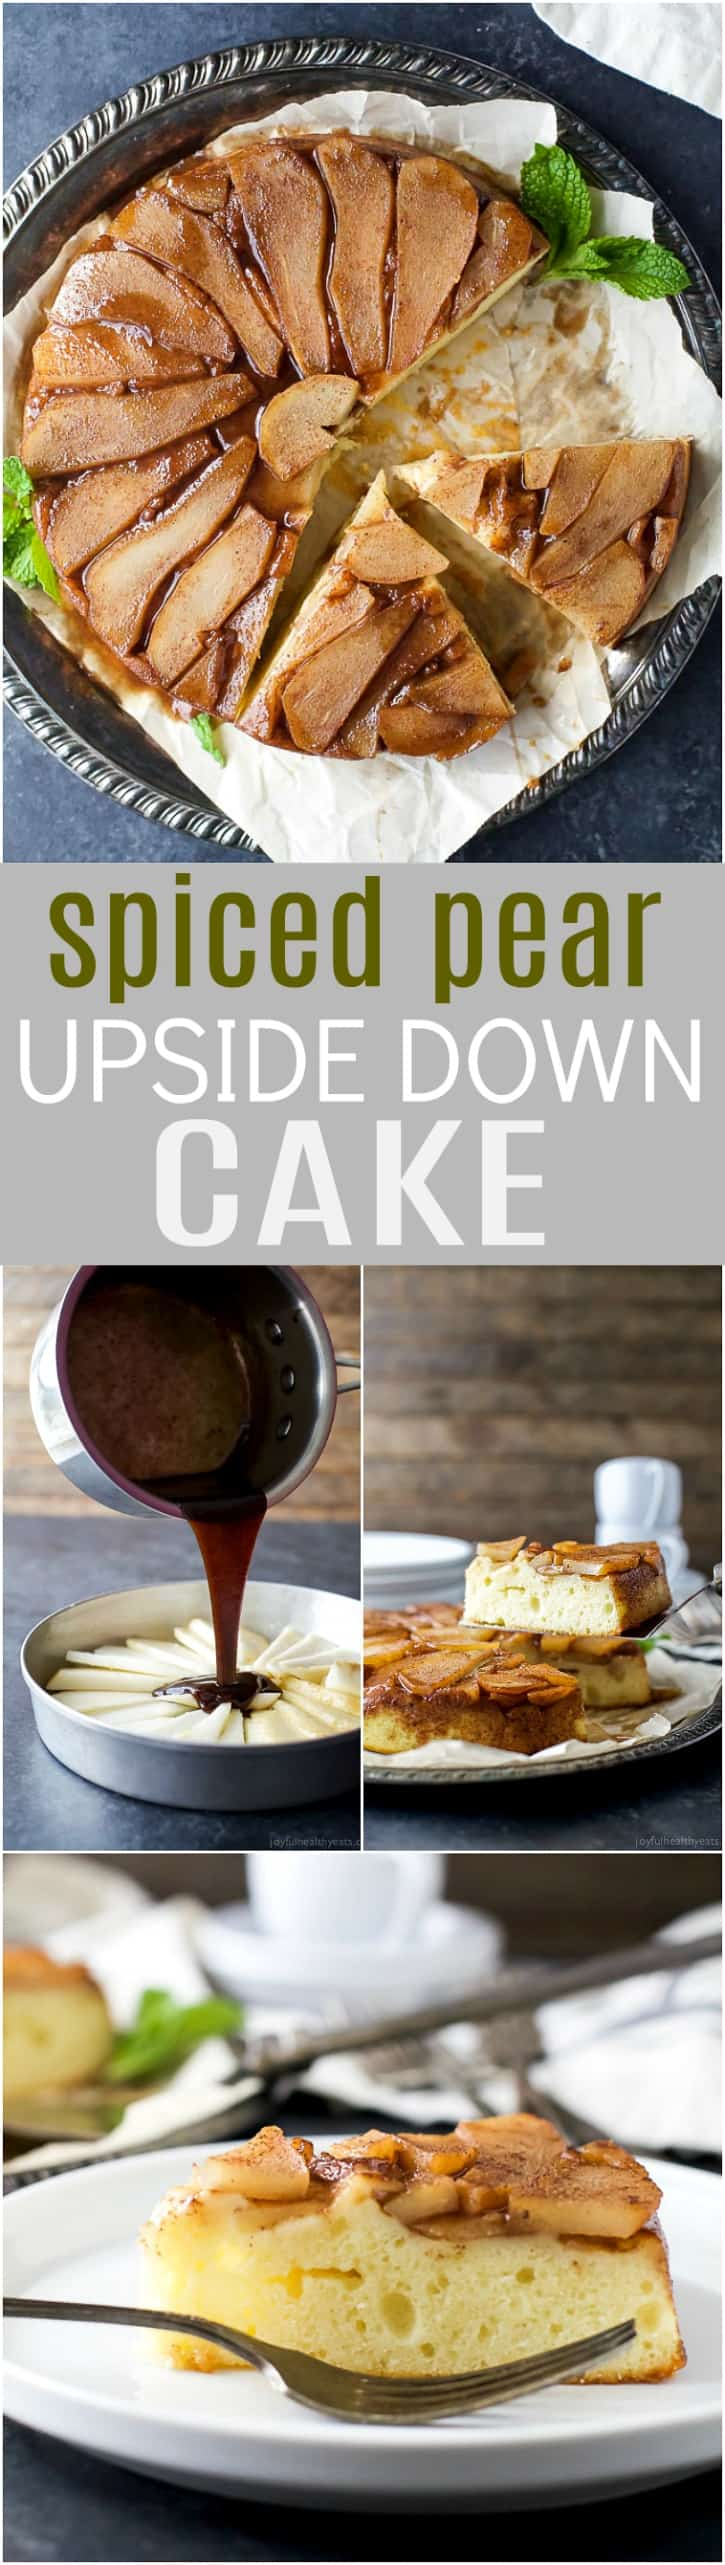 My secret to getting in on that cake and cookie action during the holidays, but still stay waist-friendly and not go into a sugar coma!? SPLENDA® Sugar Blends! I used it in my twist on Spiced Pear Upside Down Cake - you're gonna love this classic upside down cake with half the sugar. Spiced brown sugar pears on top of a moist fluffy vanilla cake! De-lish! #ad @Splenda